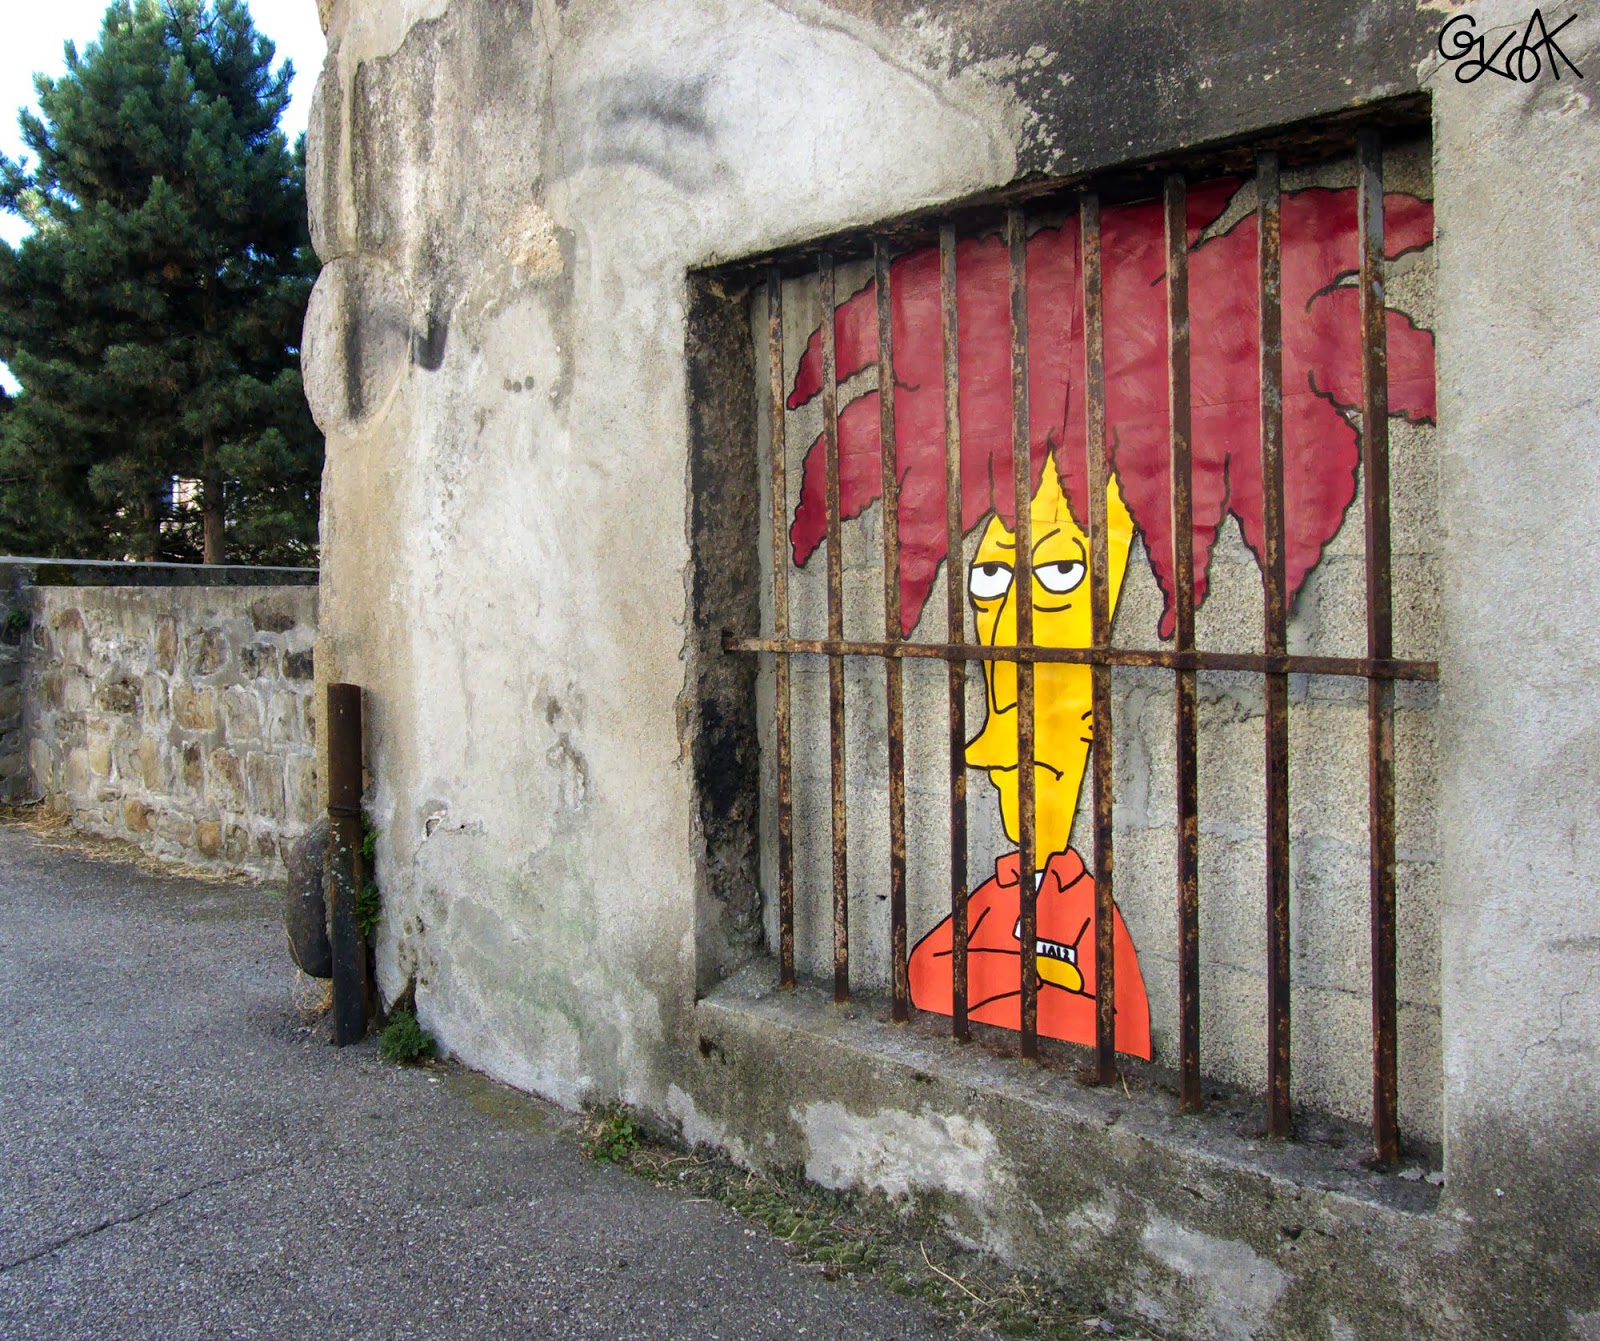 """Sideshow Bob"" a new Simpsons themed Street Art Piece by OakOak in Saint Etienne, France. 1"